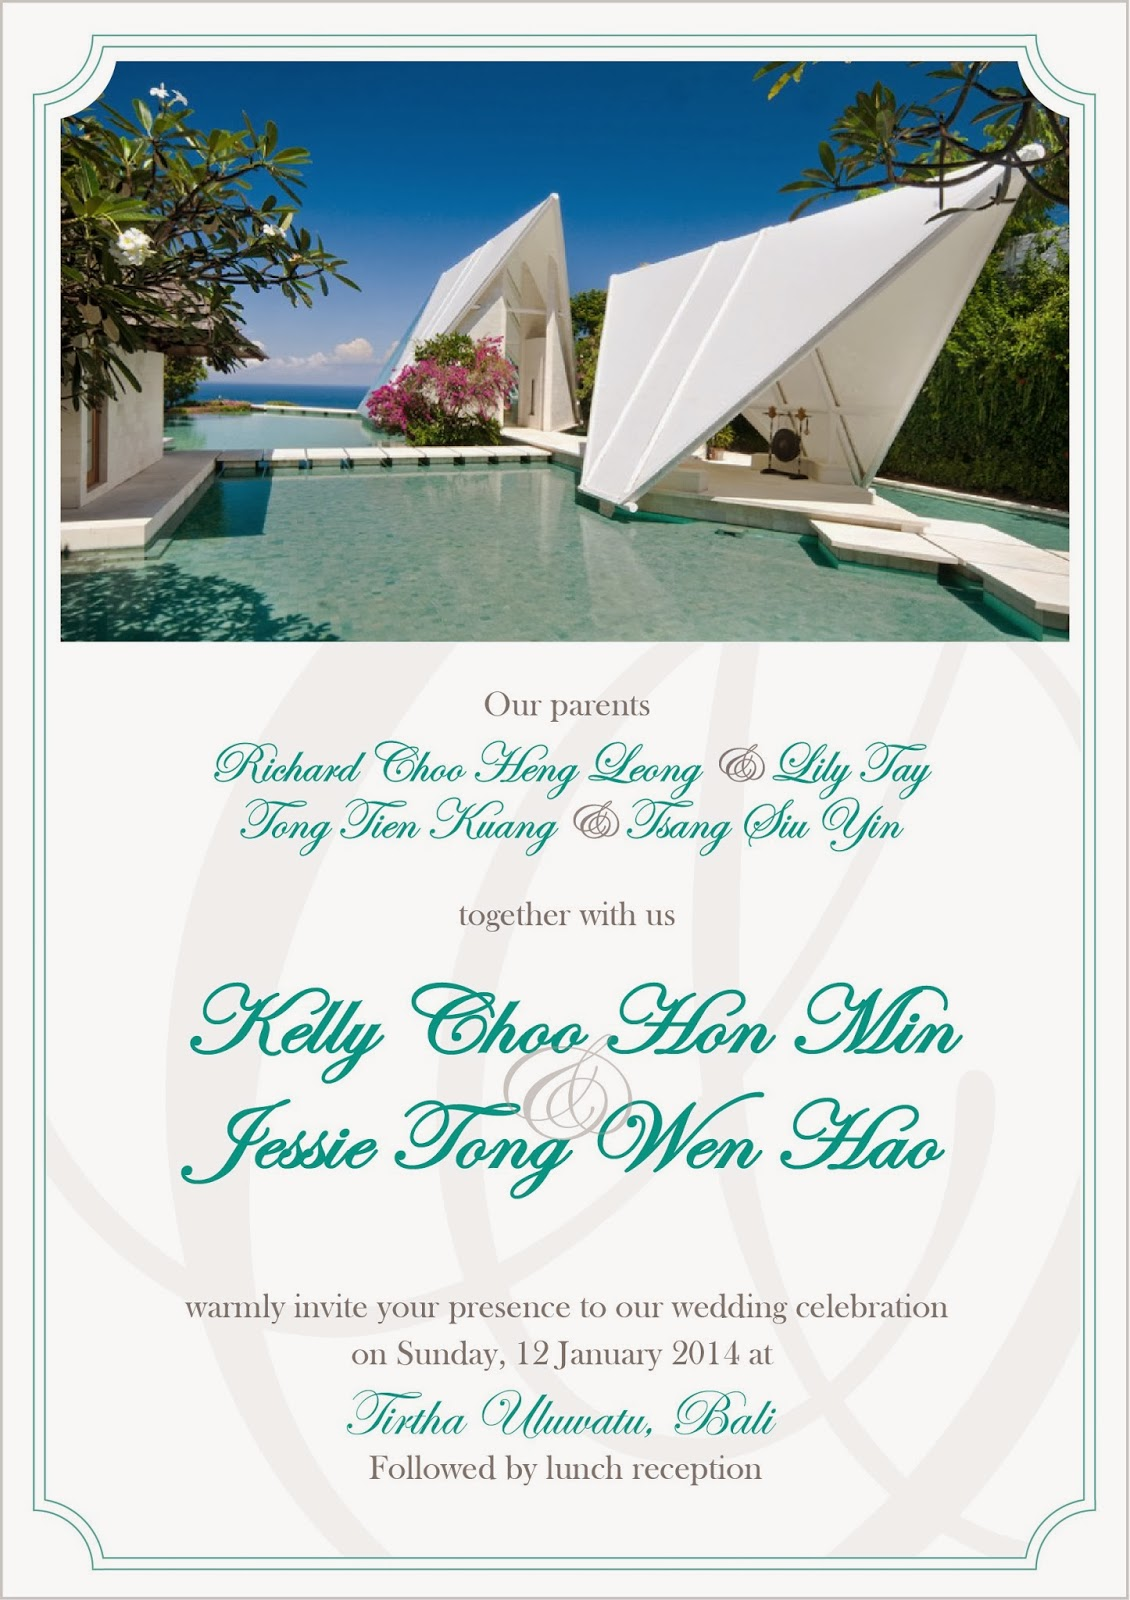 Not Another Wedding Reception: Our Wedding Invitation for Tirtha ...